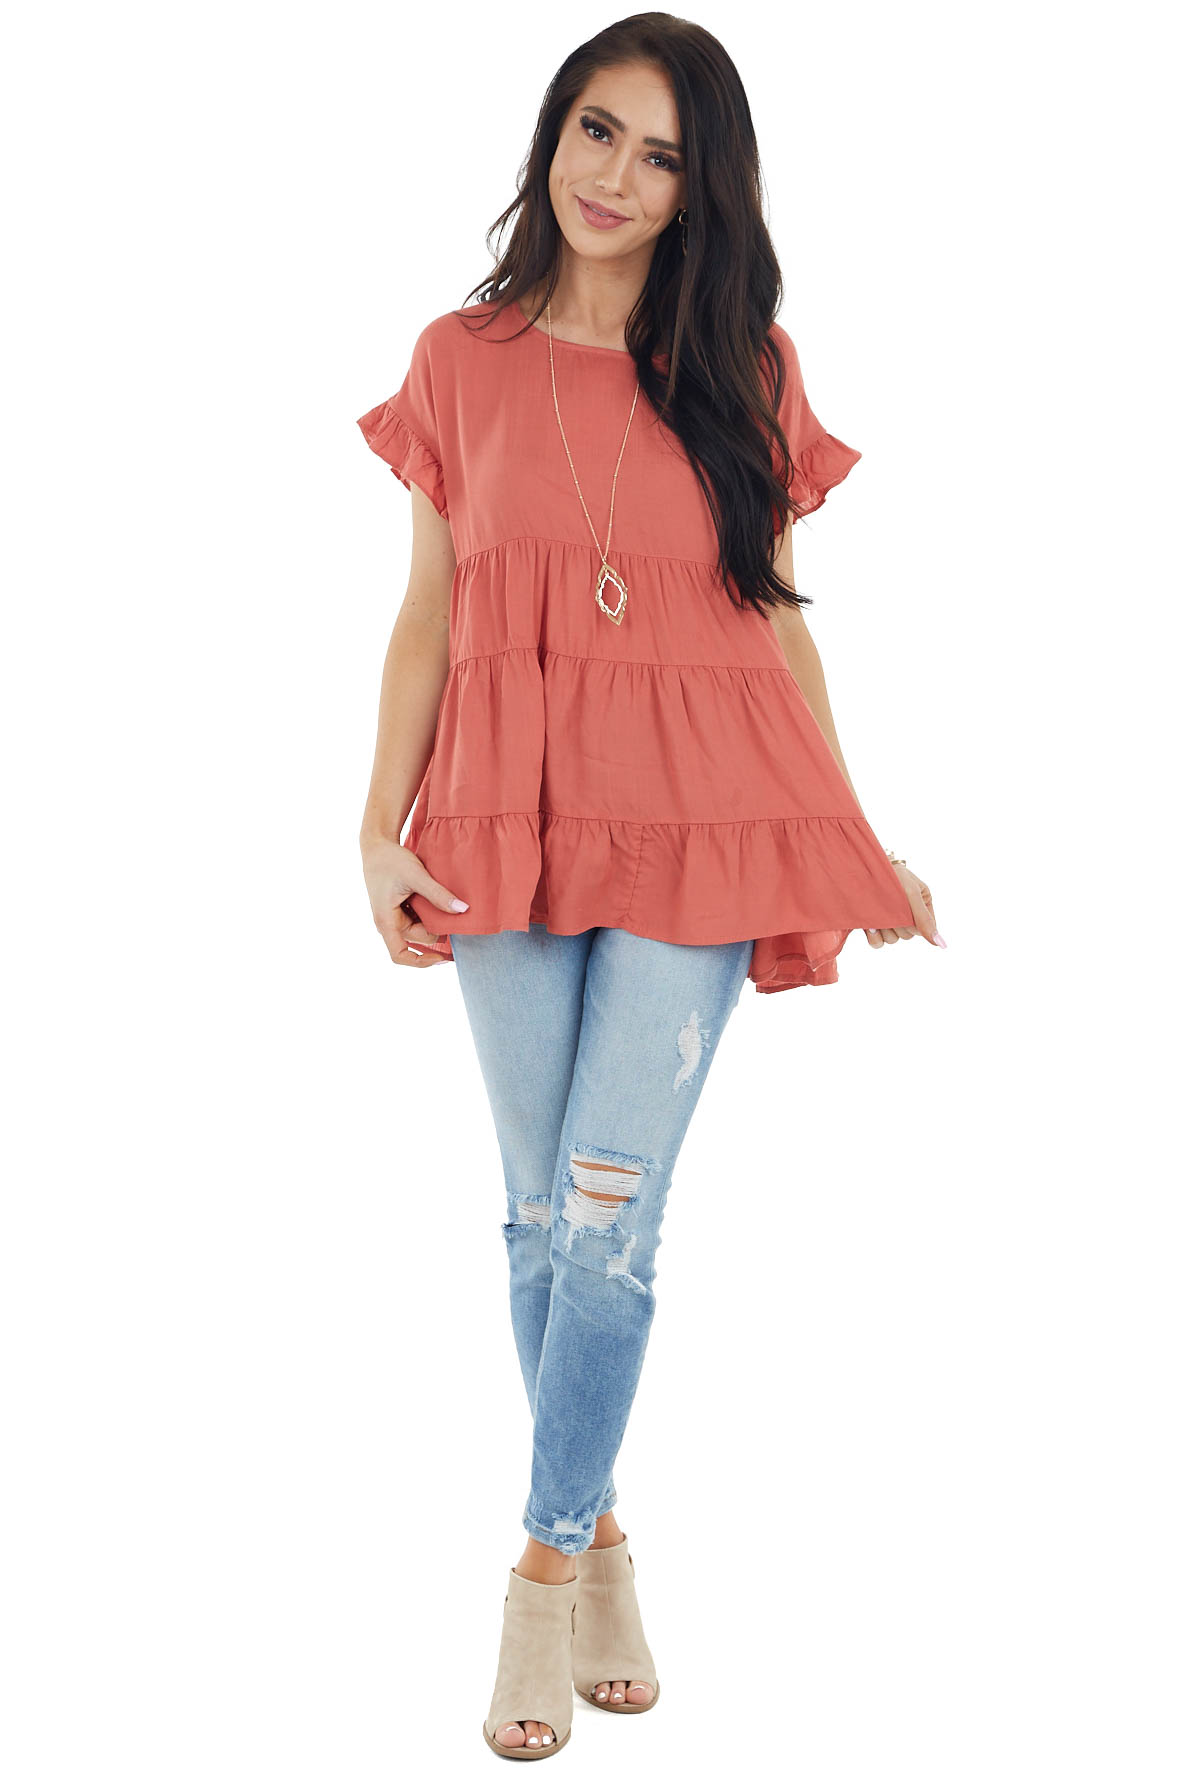 Terracotta Babydoll Woven Top with Short Ruffled Sleeves